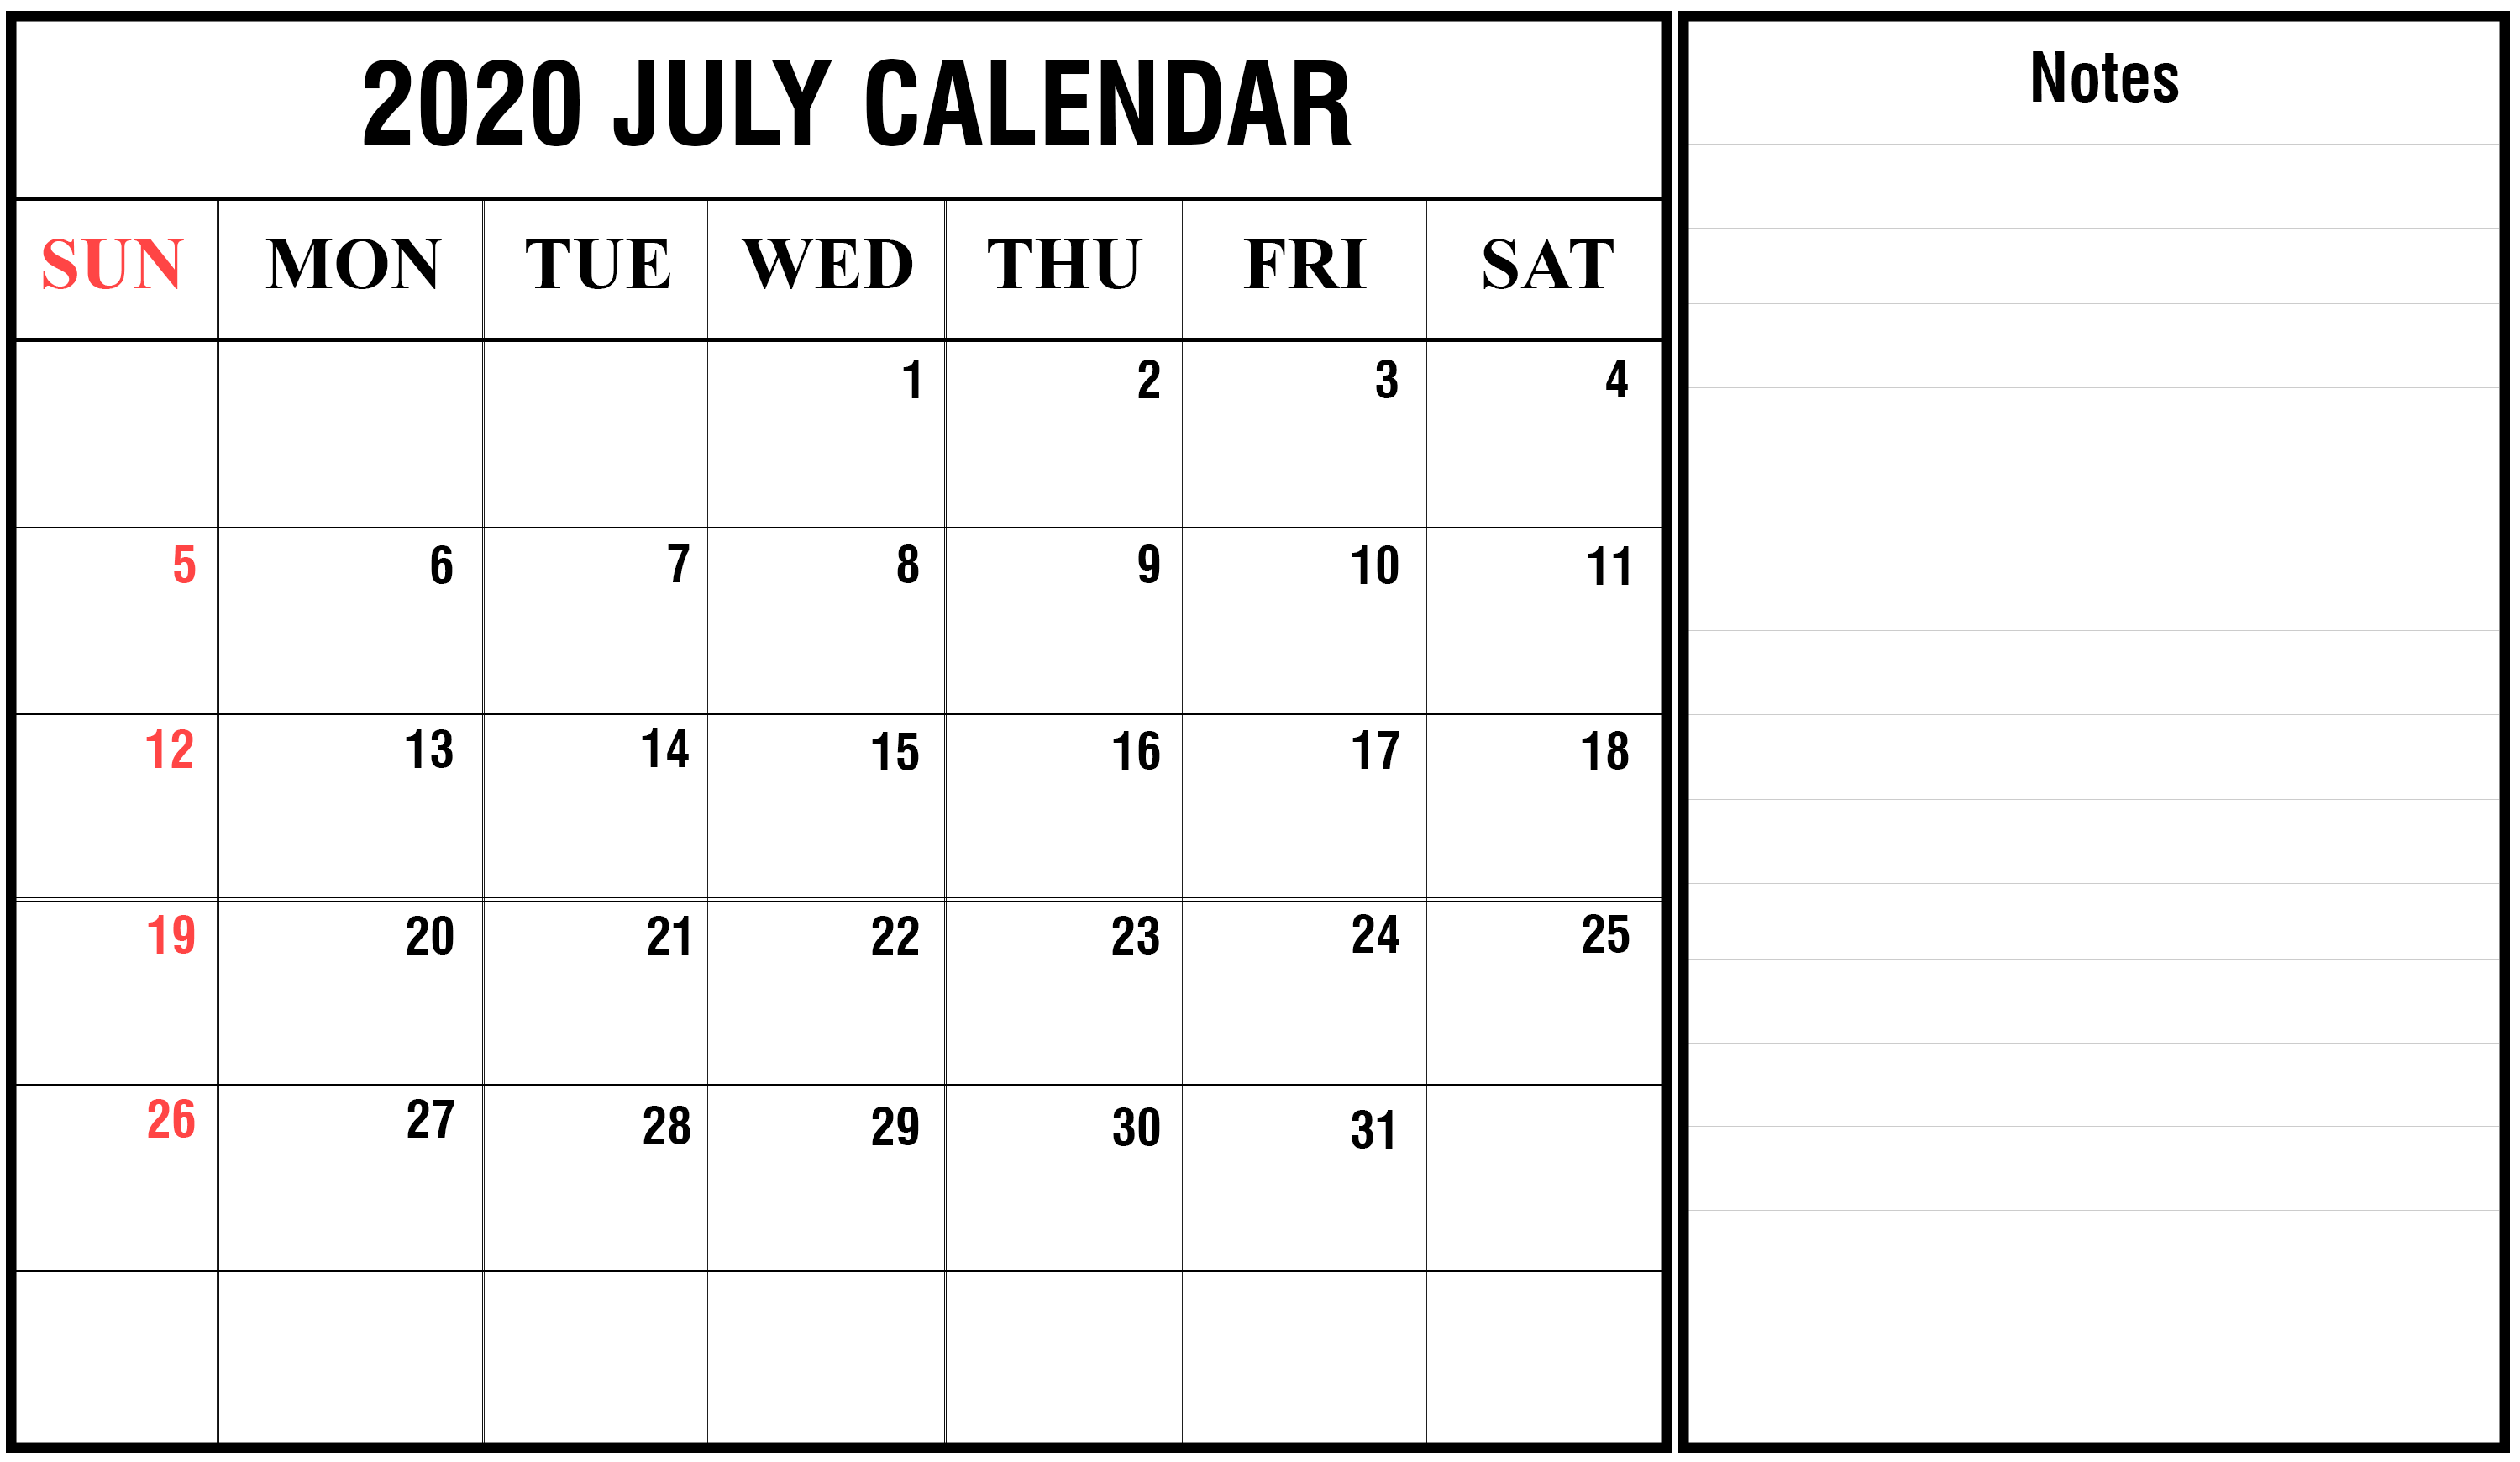 Awesome July 2020 Calendar PDF Word Excel Template 3000x1740